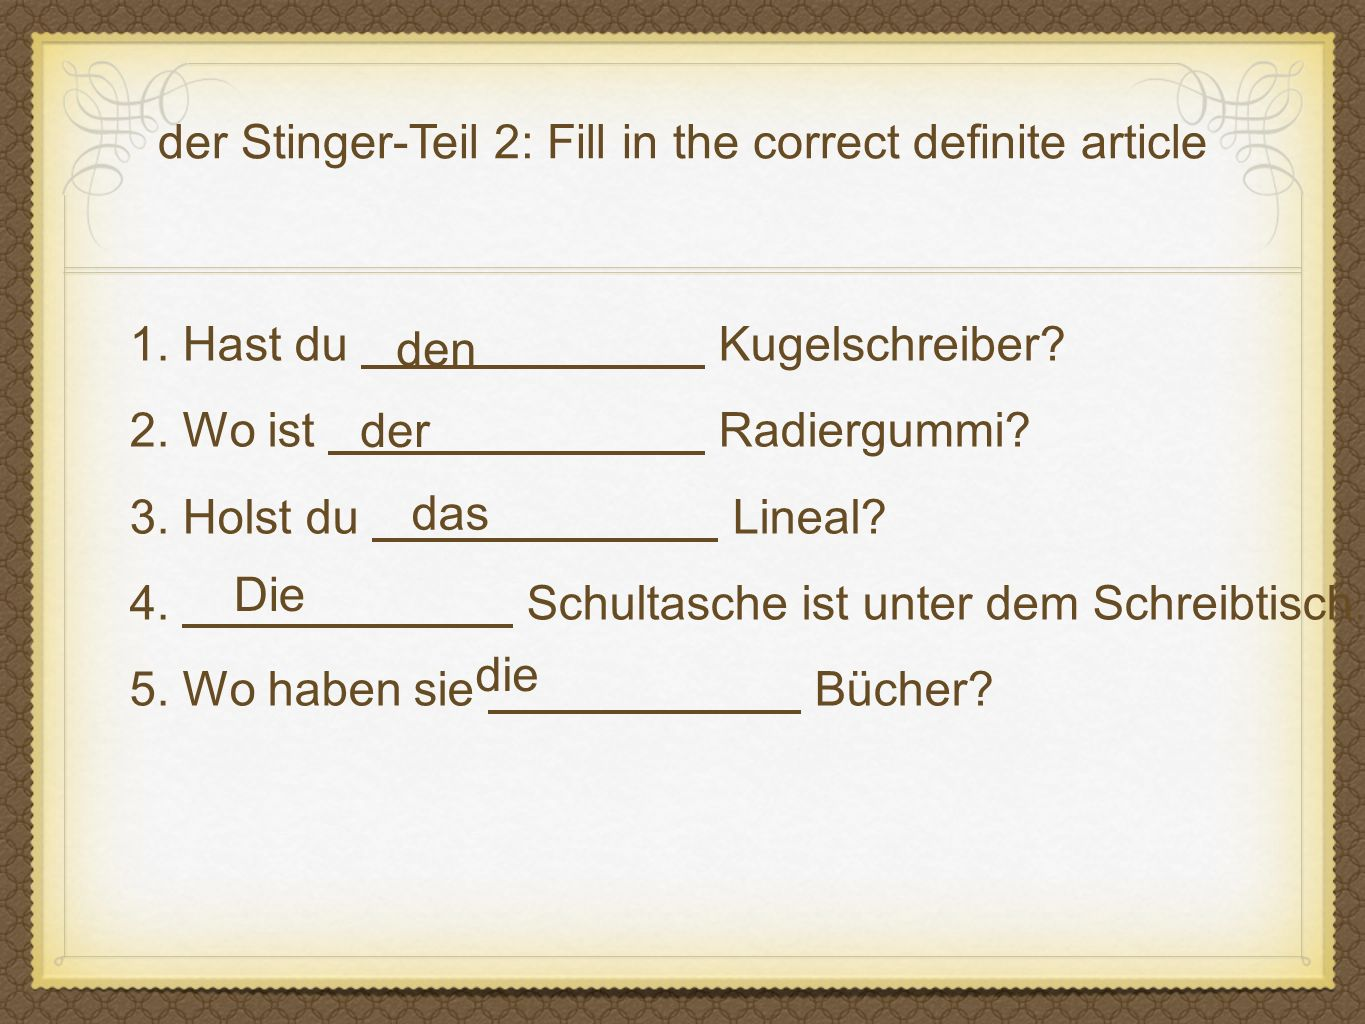 der Stinger-Teil 2: Fill in the correct definite article